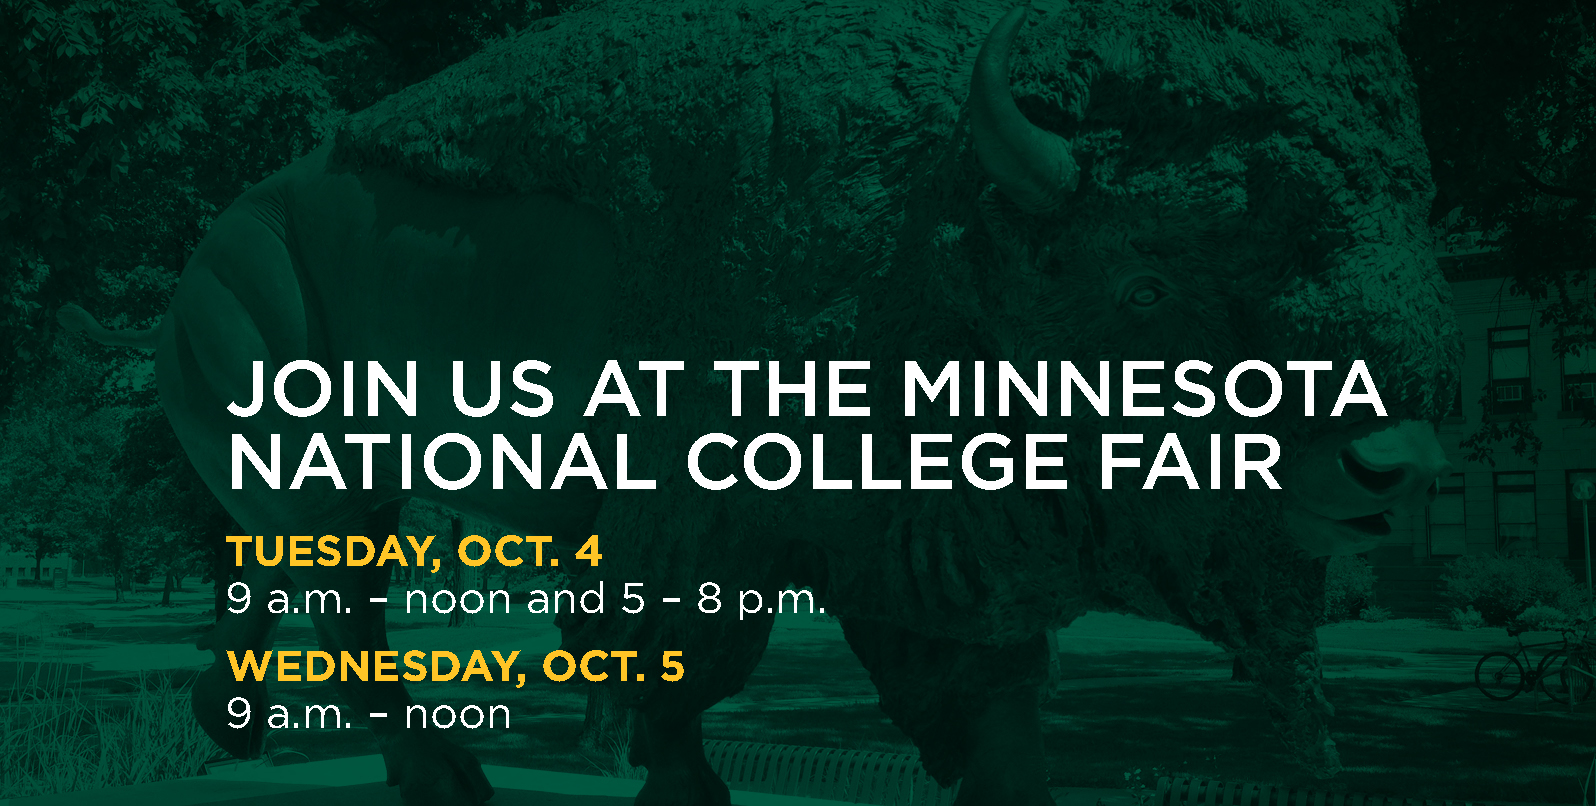 Join us for the Minnesota National College Fair